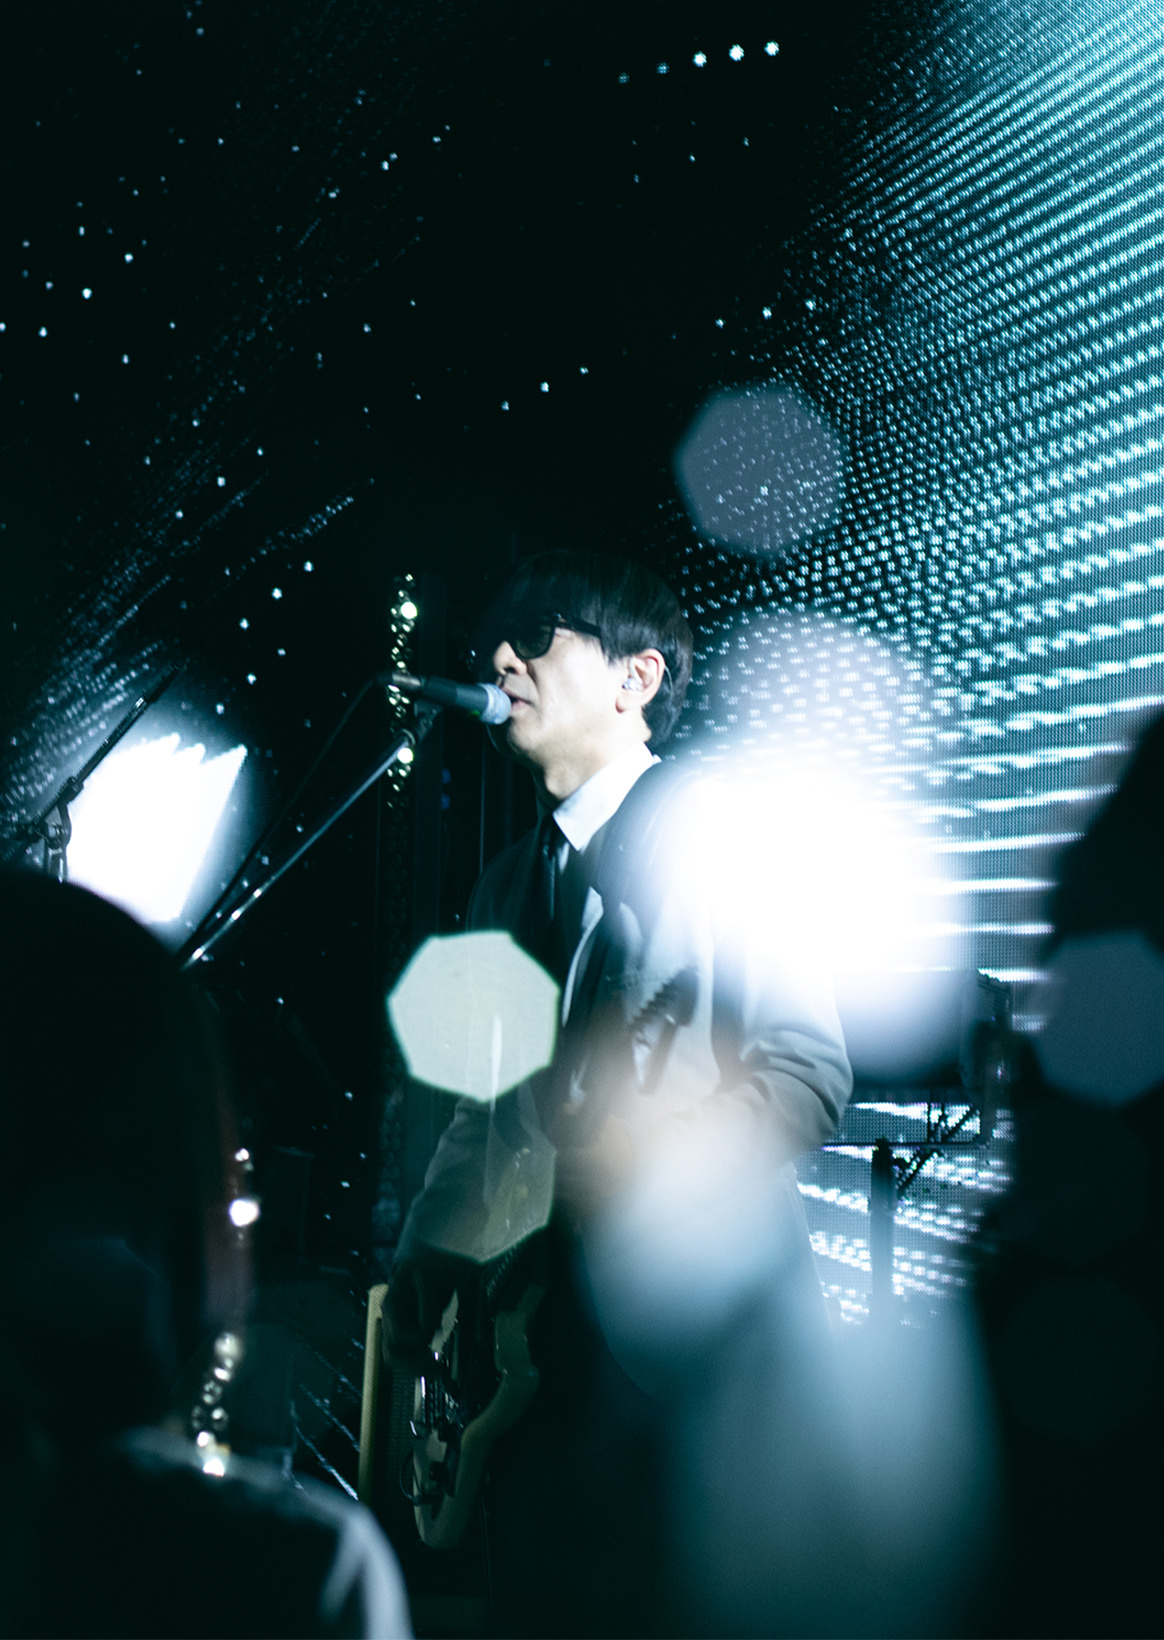 """CORNELIUS live show case ""SHIBUYA PARCO sound check 1.2"" secret live photo exhibition"